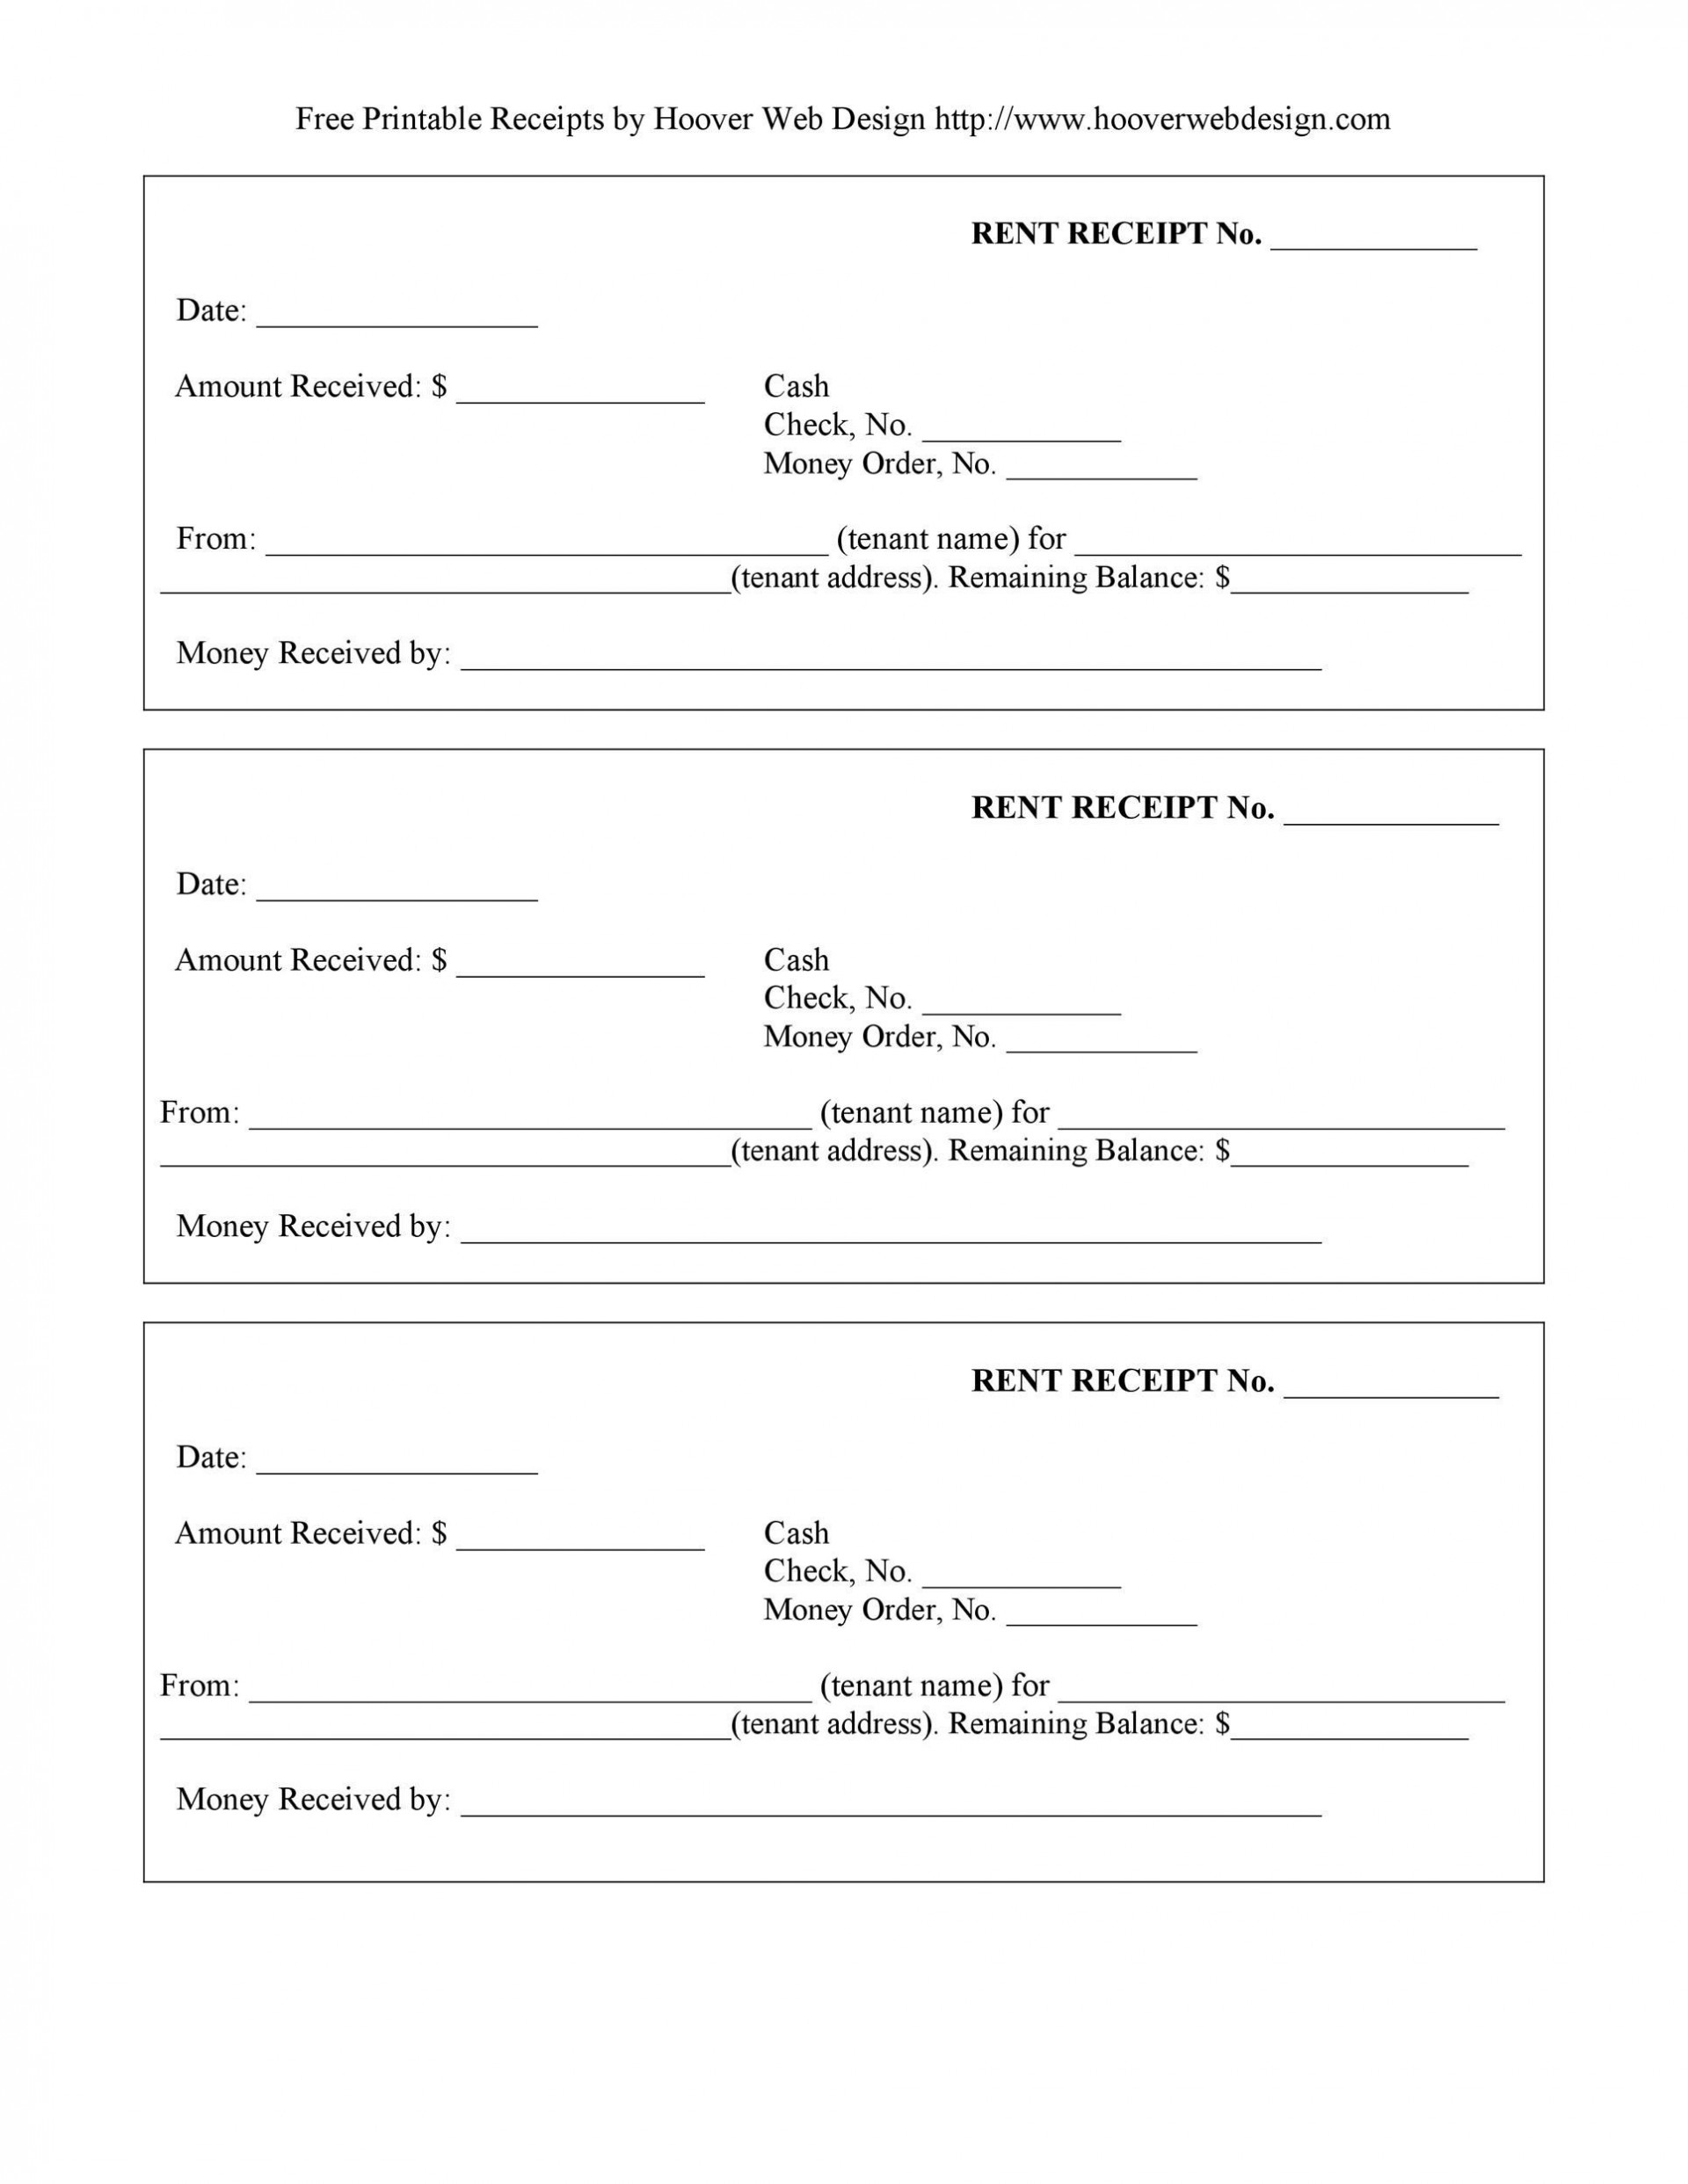 009 Excellent Rent Receipt Template Docx Picture  Format Doc Free Download India1920